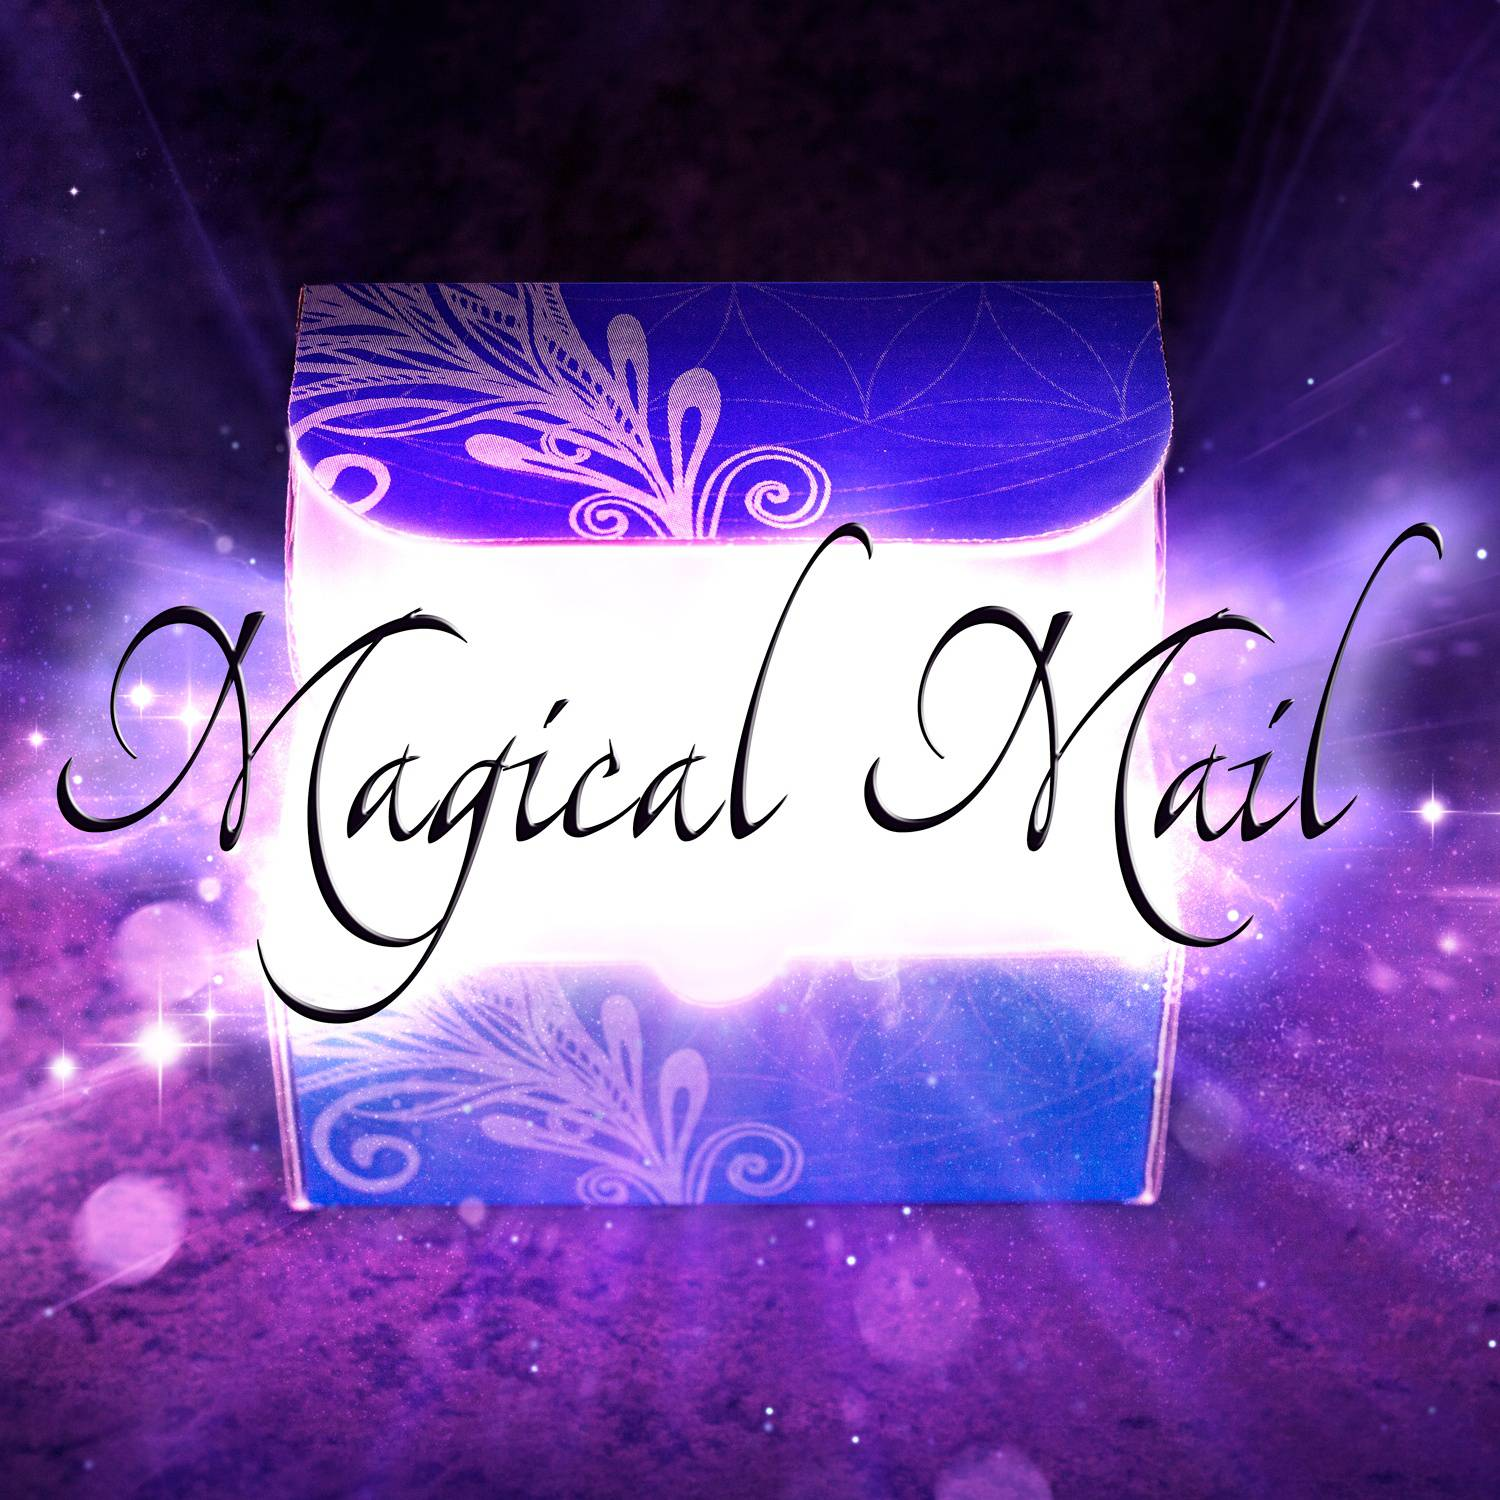 Magical-Mail-Open-Edited-Text-Box-Purple-Square